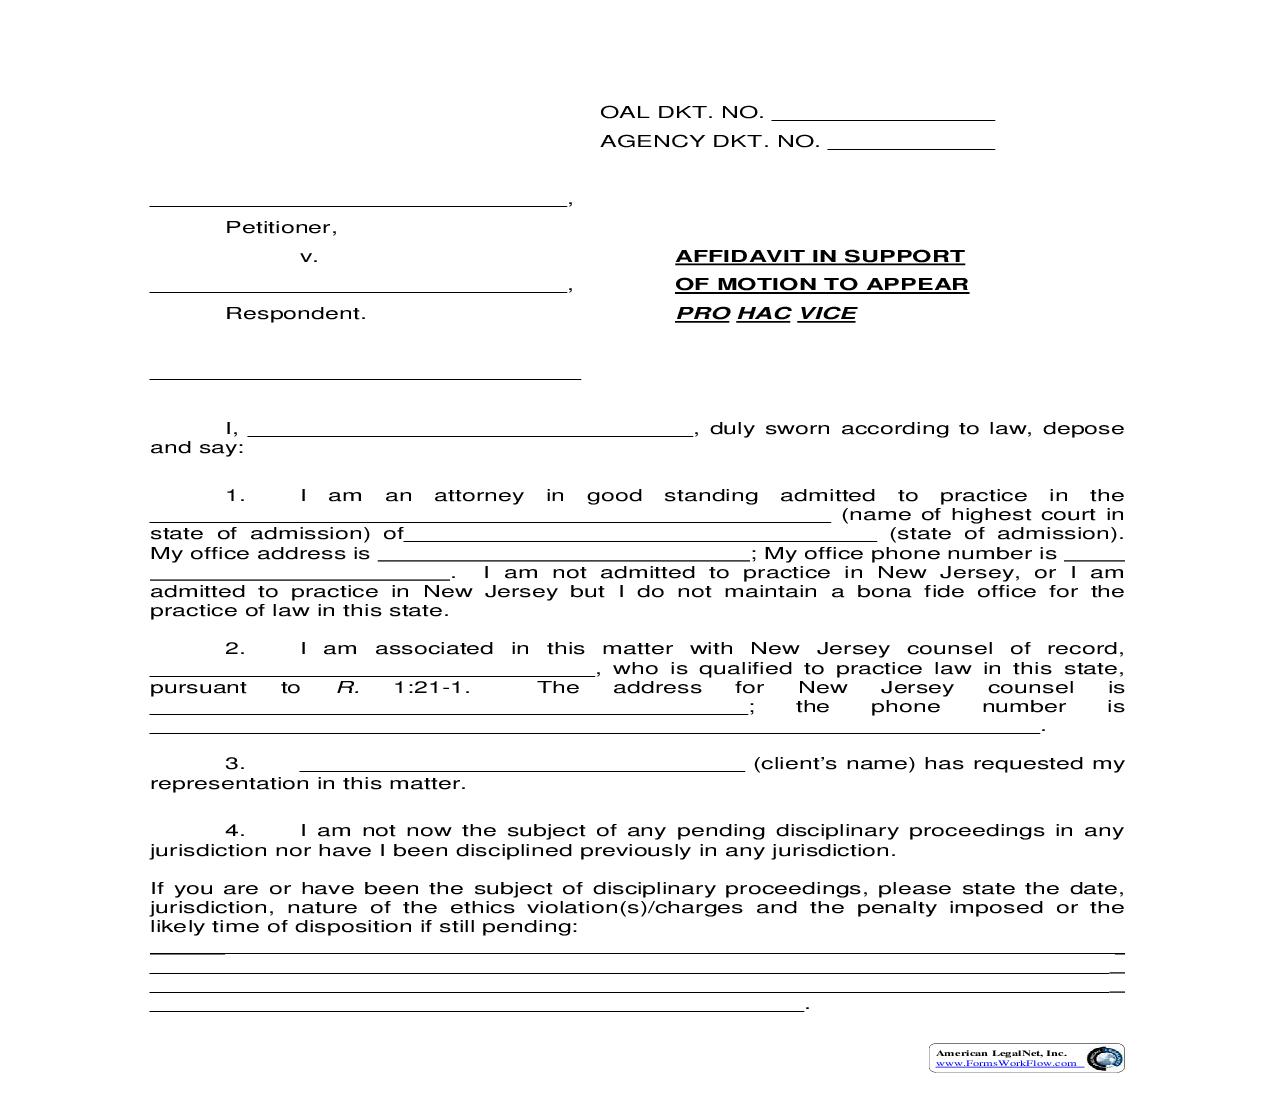 Affidavit In Support Of Motion To Appear Pro Hac Vice   Pdf Fpdf Doc Docx   New Jersey